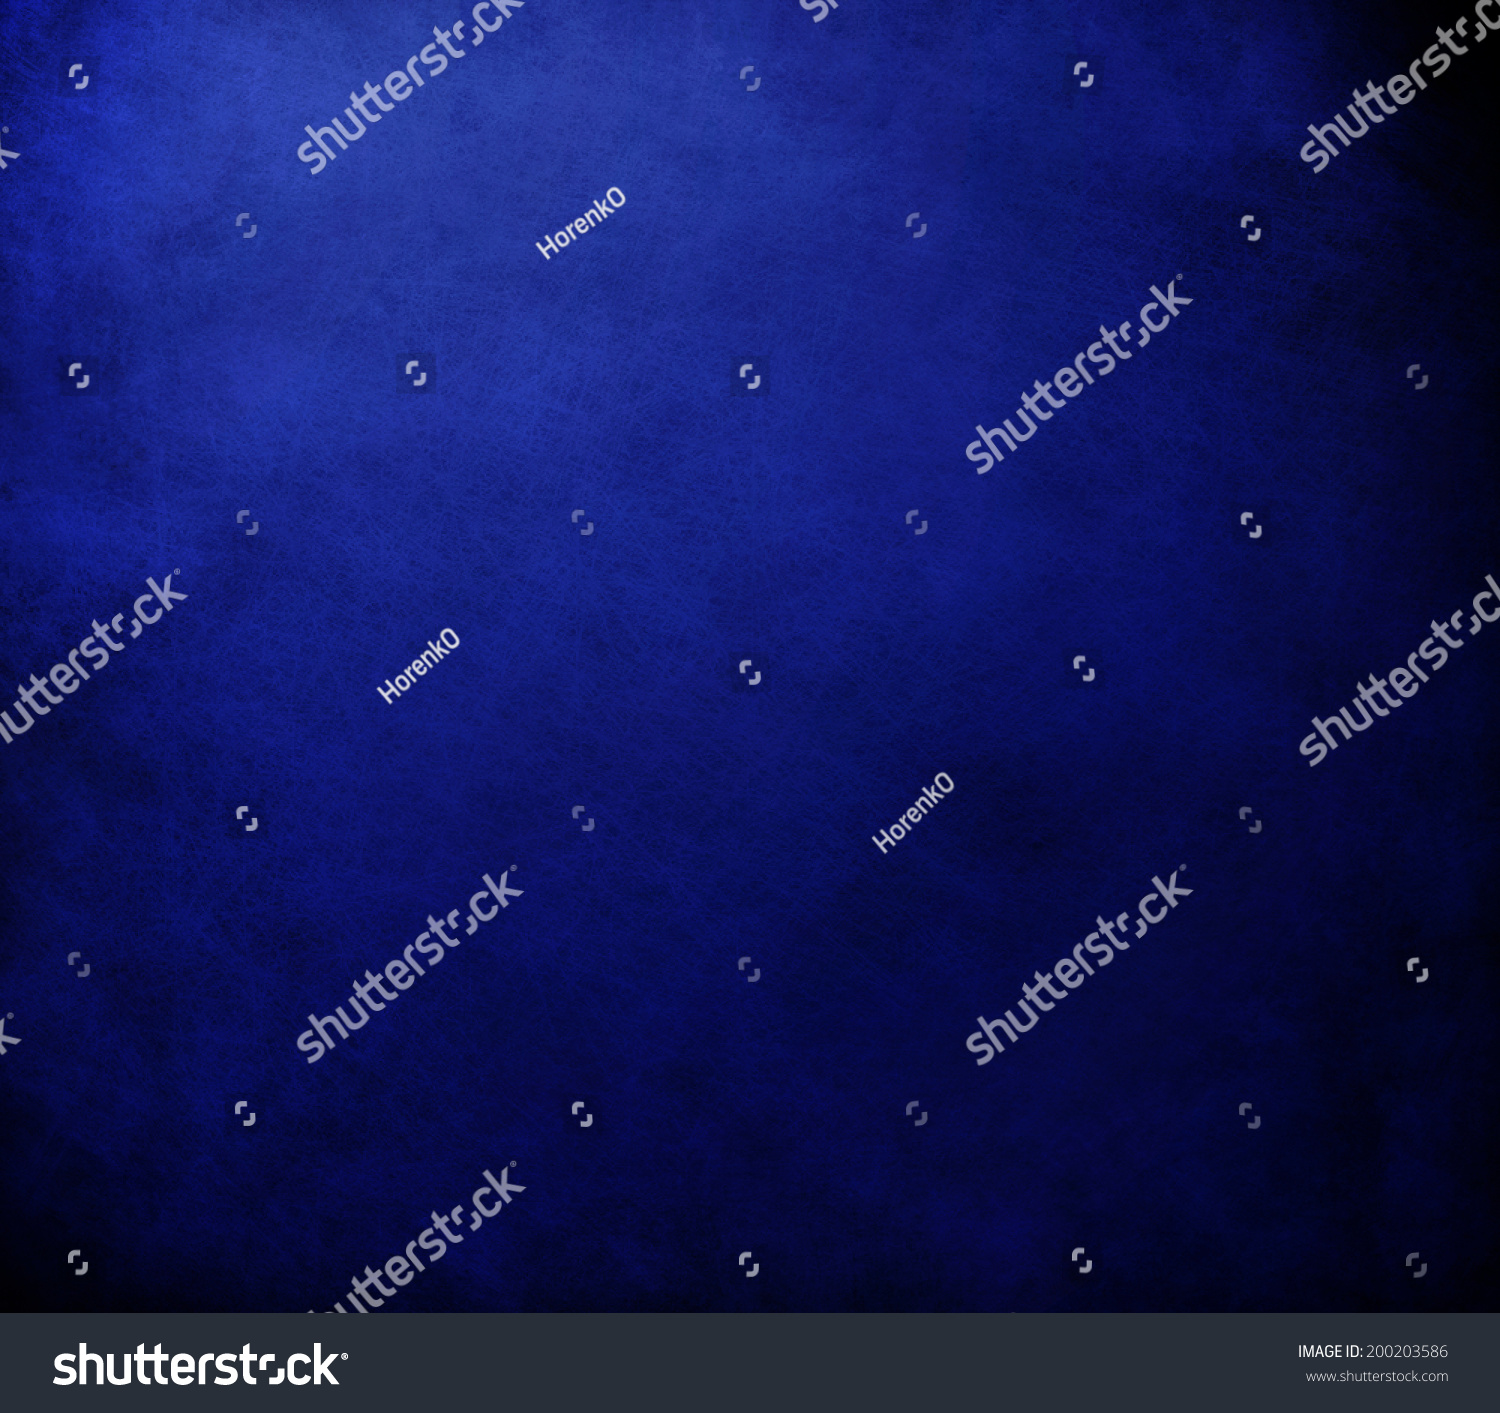 Book Cover Background Color : Royal blue background black border cool stock photo